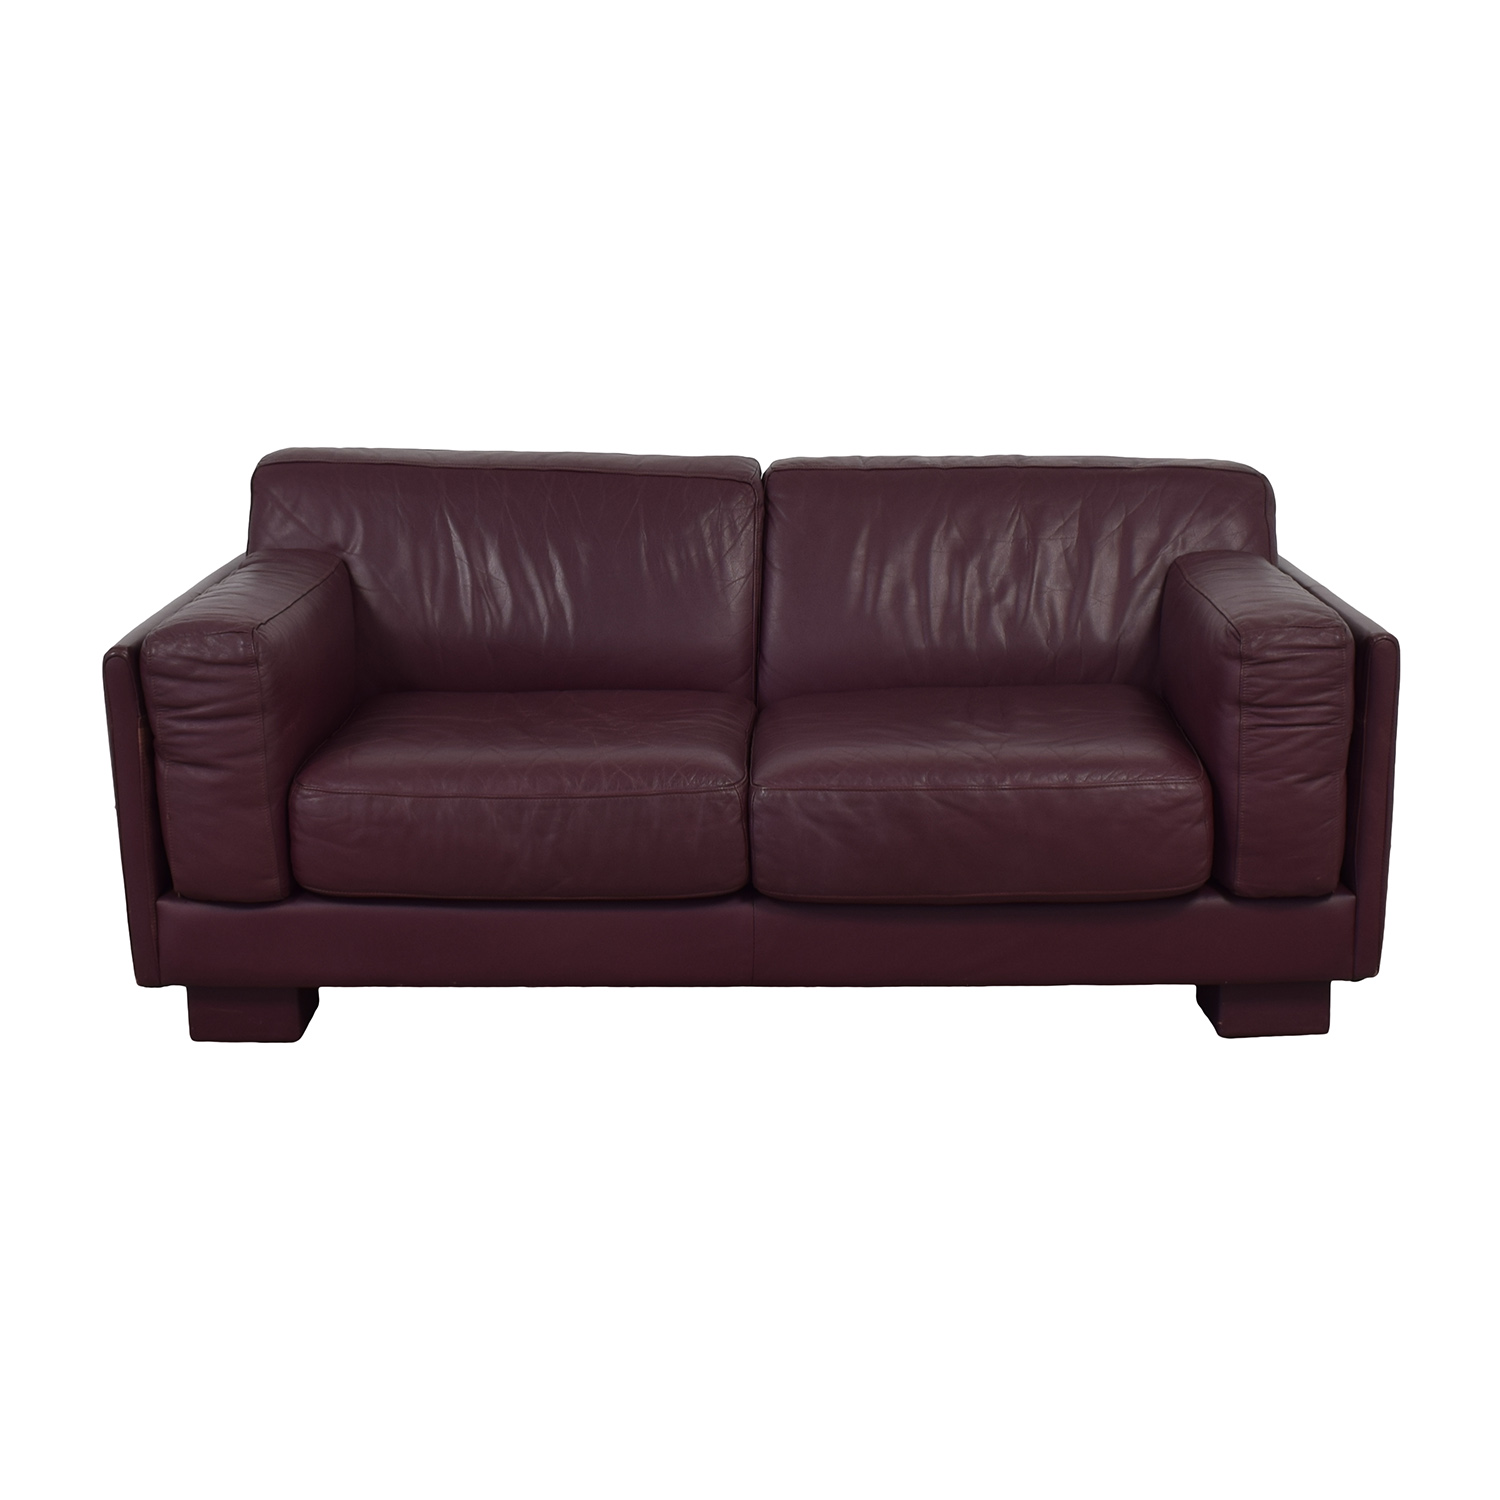 shop Leather Center Leather Center Burgundy Leather Two-Cushion Loveseat online